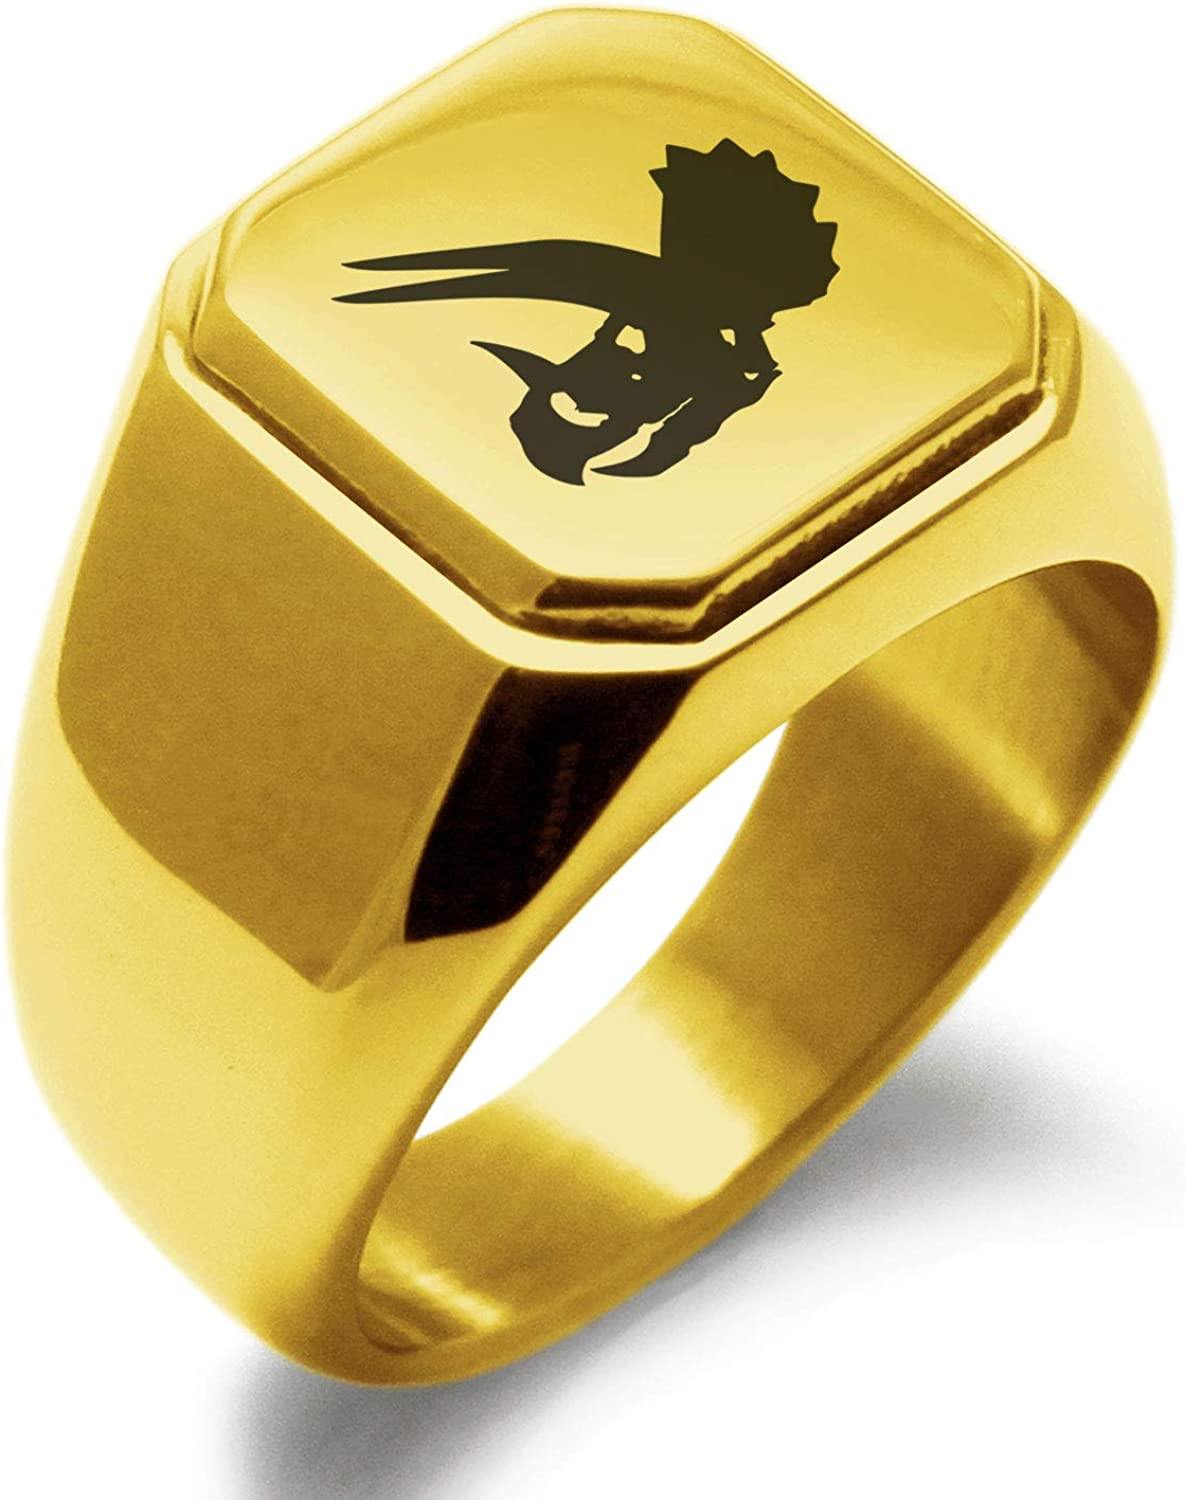 Tioneer Stainless Steel Tyrannosaurus Rex Fossil Minimalist Oval Top Polished Statement Ring